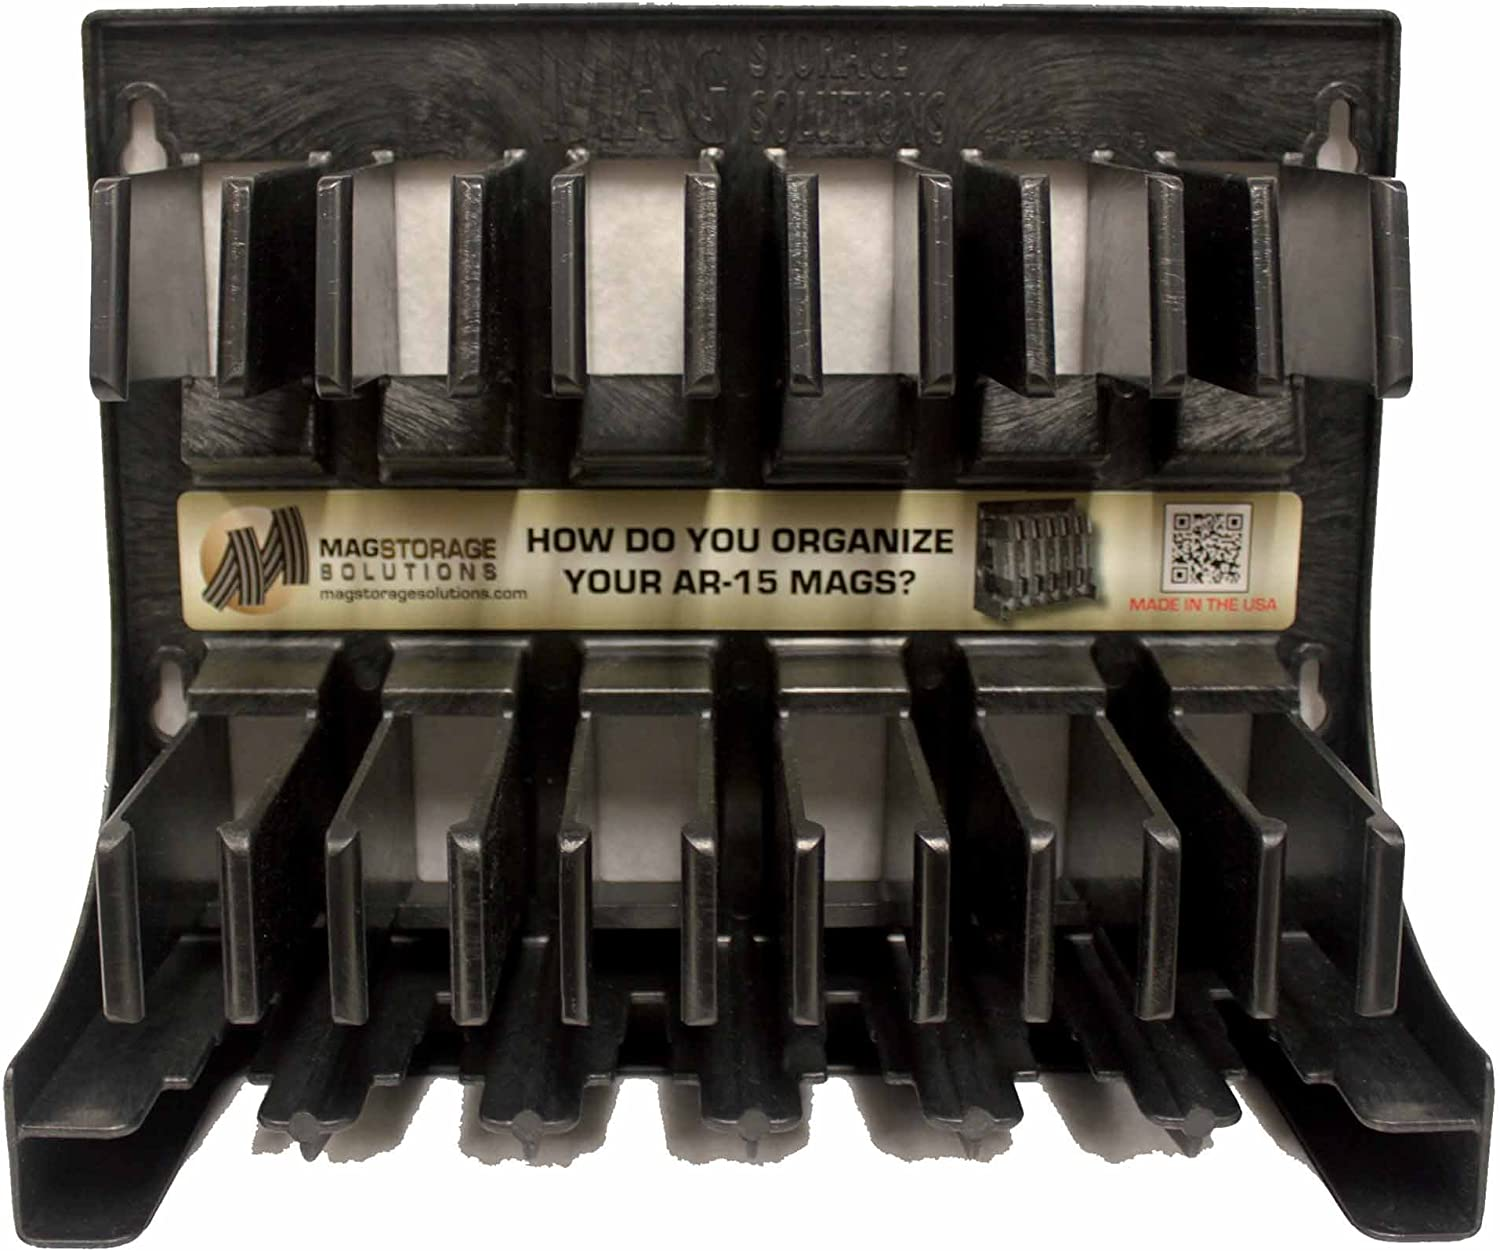 Mag Storage Solutions 5.56 .223 MagHolder Magazine Holder Storage Rack Magpul